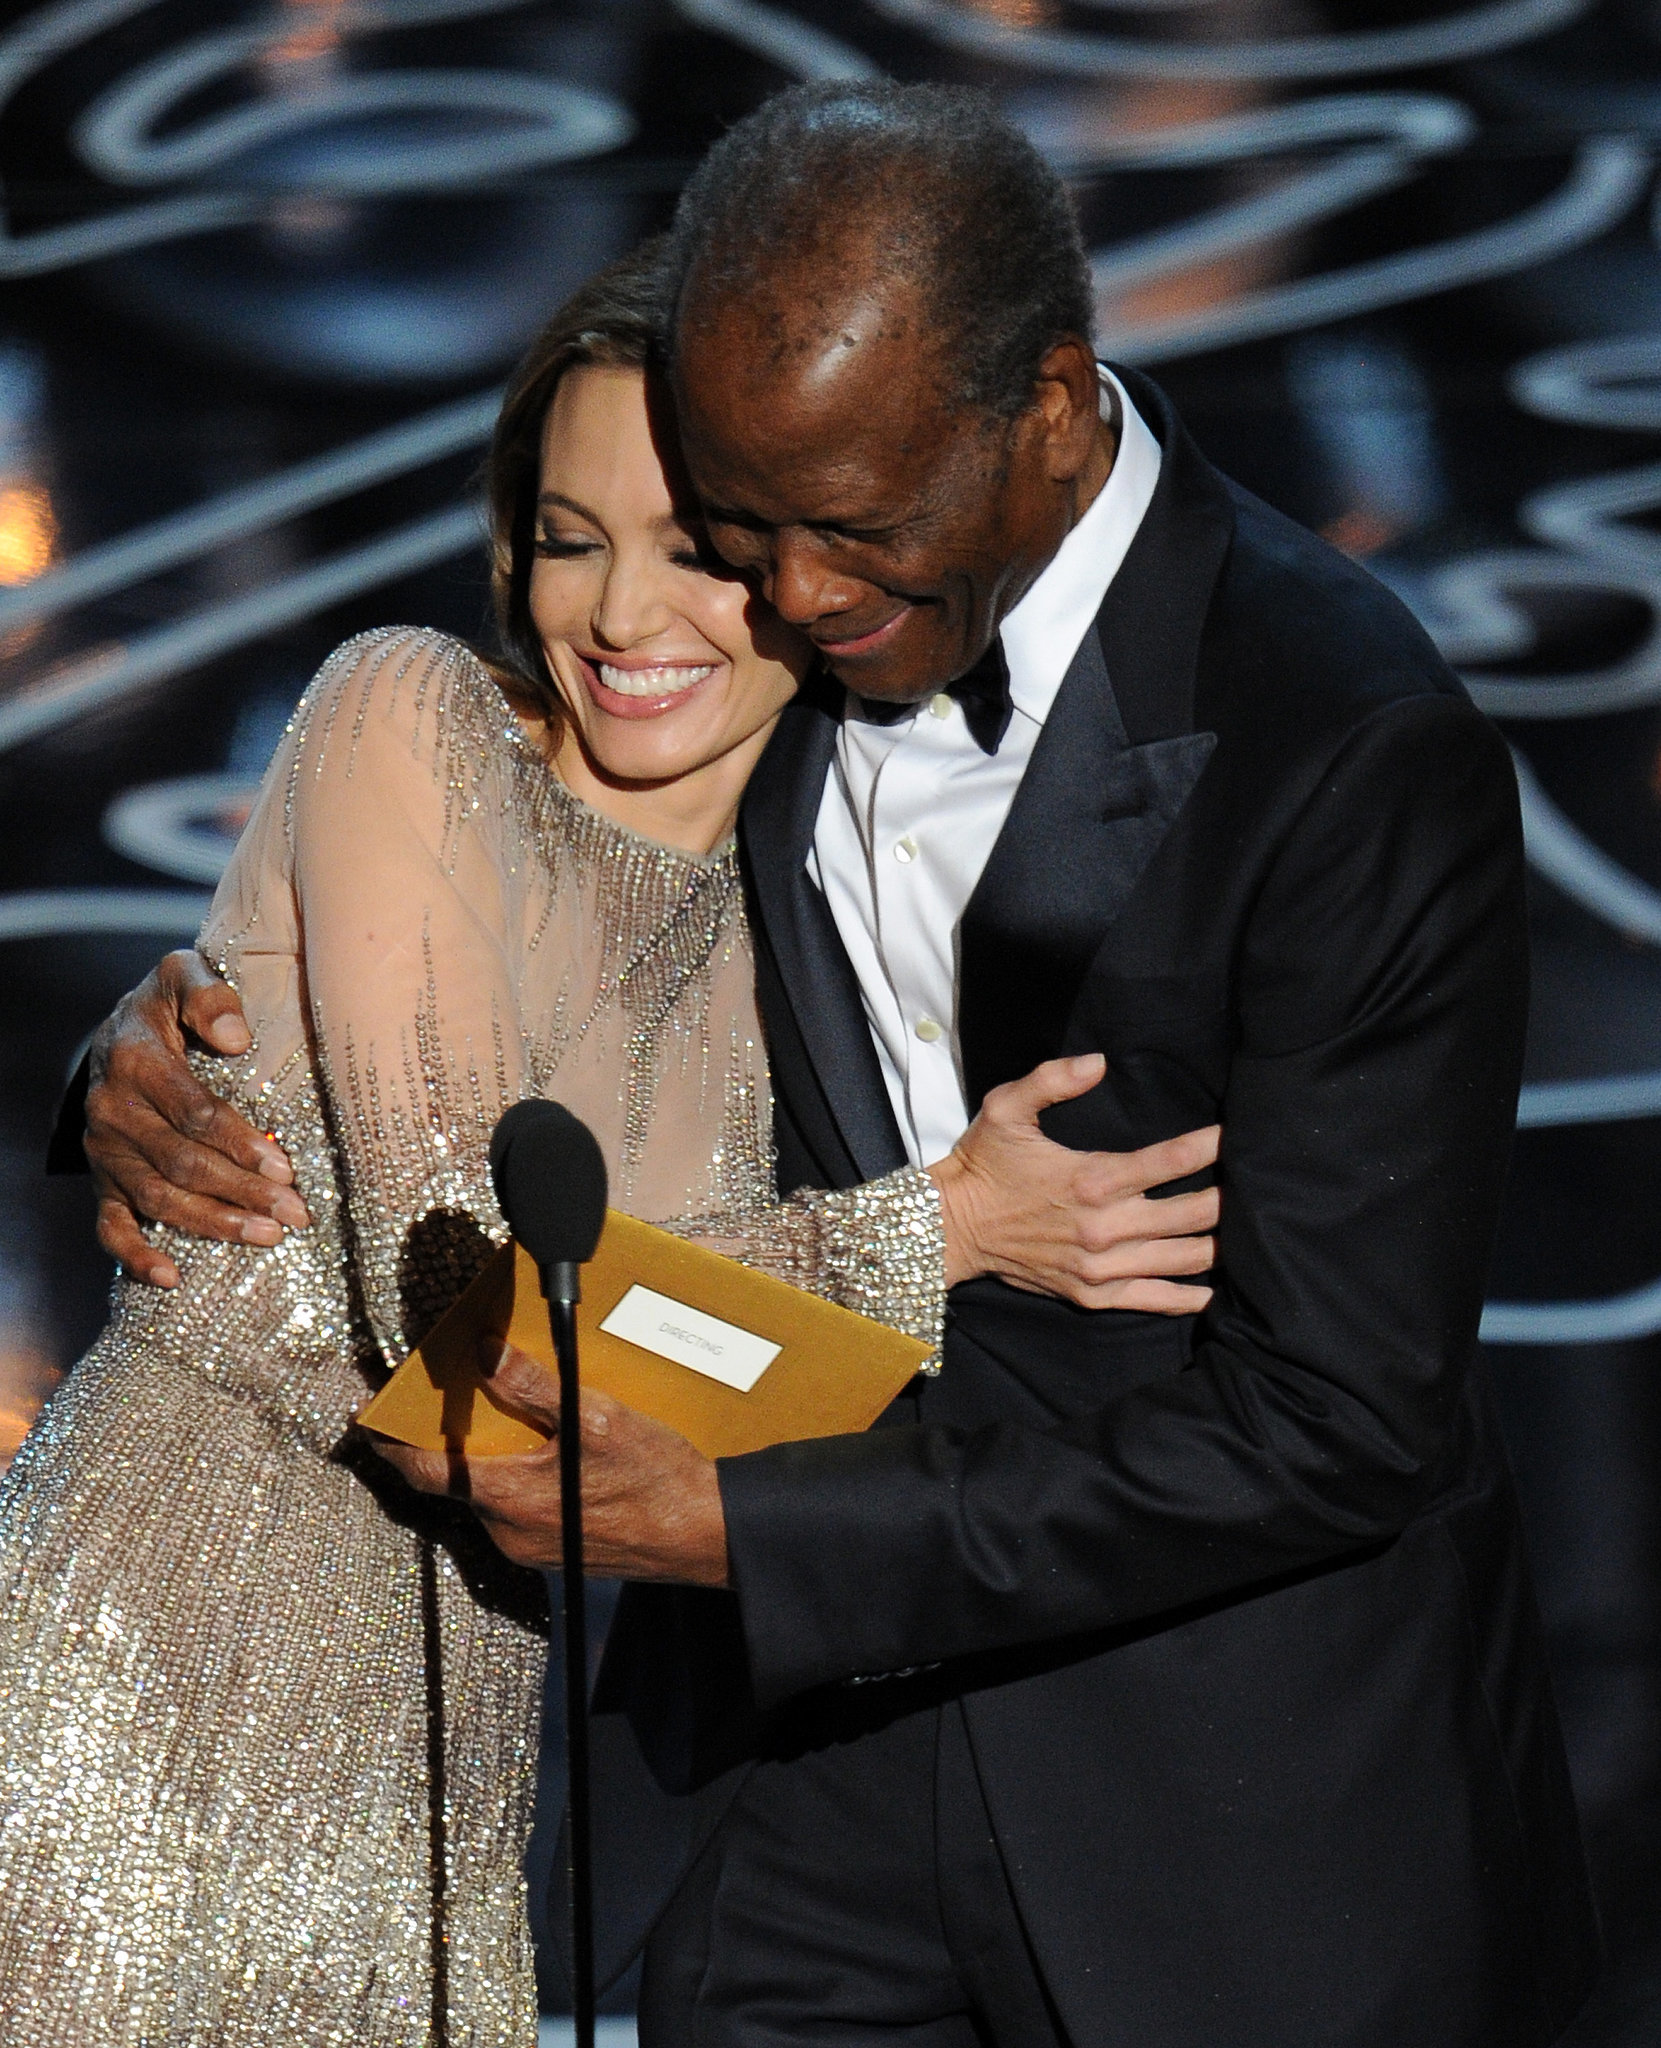 Angelina Jolie cuddled up to Sidney Poitier on stage as they presented the award for best director.